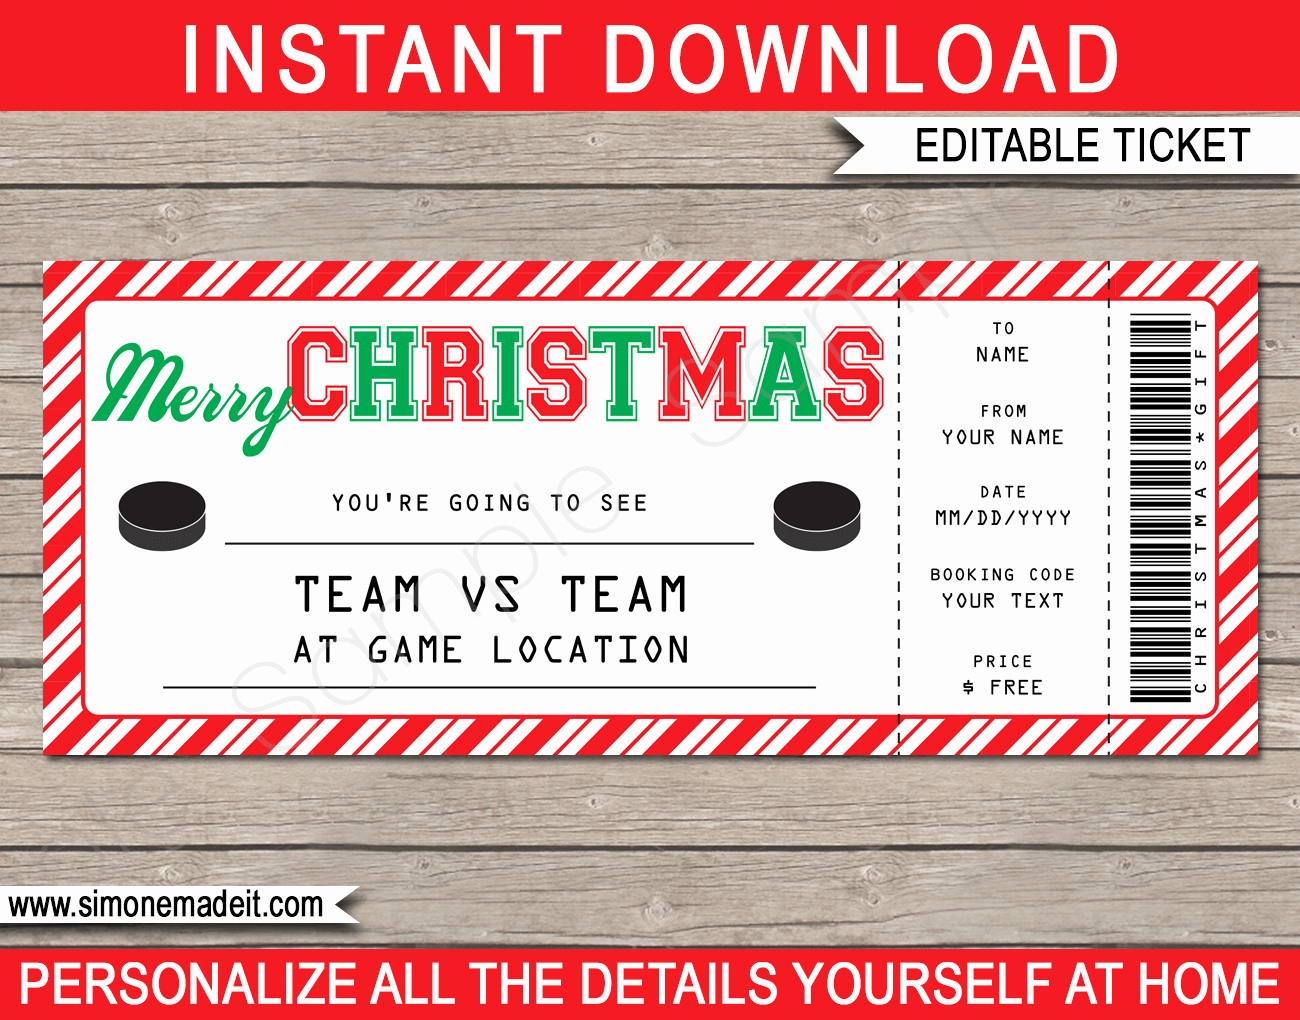 Airline Ticket Gift Certificate Template Lovely Christmas Hockey Ticket Gift Voucher